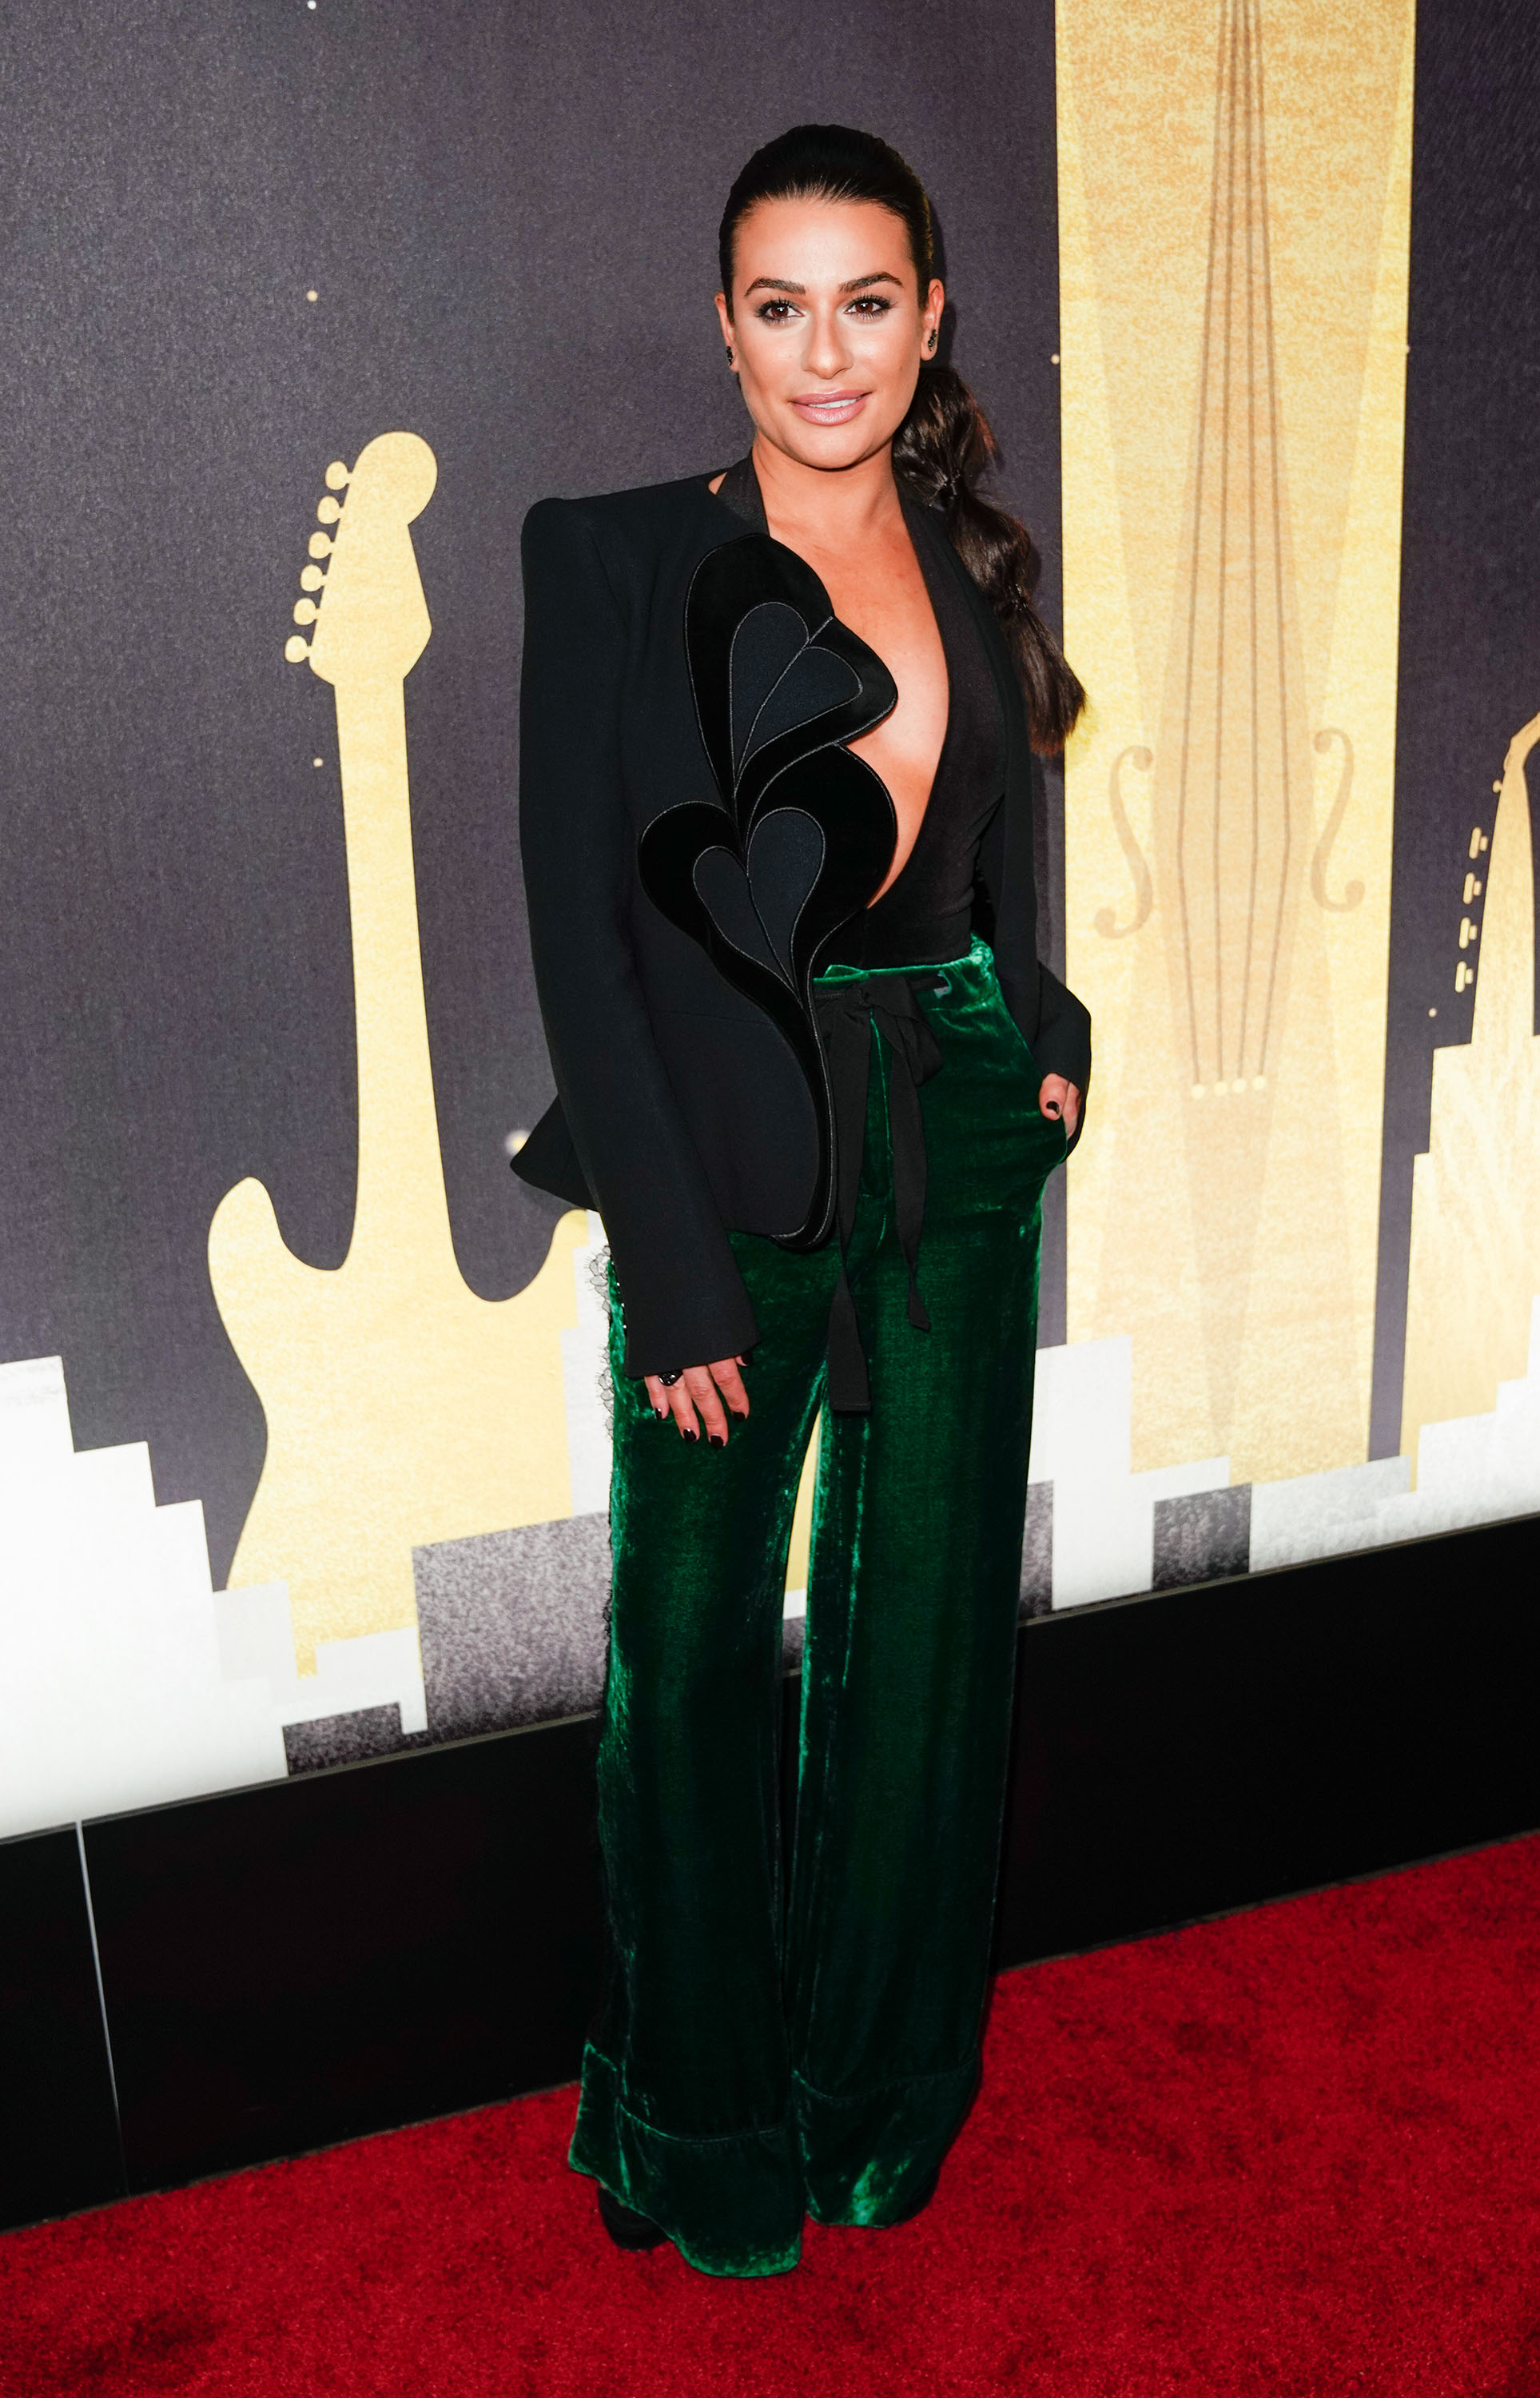 Lea Michele plays around with a pilot's hat at a Delta Airlines Grammy event at the Bowery Hotel in New York     <P> Pictured: Lea Michele <B>Ref: SPL1650929  260118  </B><BR/> Picture by: Jackson Lee / Splash News<BR/> </P><P> <B>Splash News and Pictures</B><BR/> Los Angeles:310-821-2666<BR/> New York:212-619-2666<BR/> London:870-934-2666<BR/> <span id=